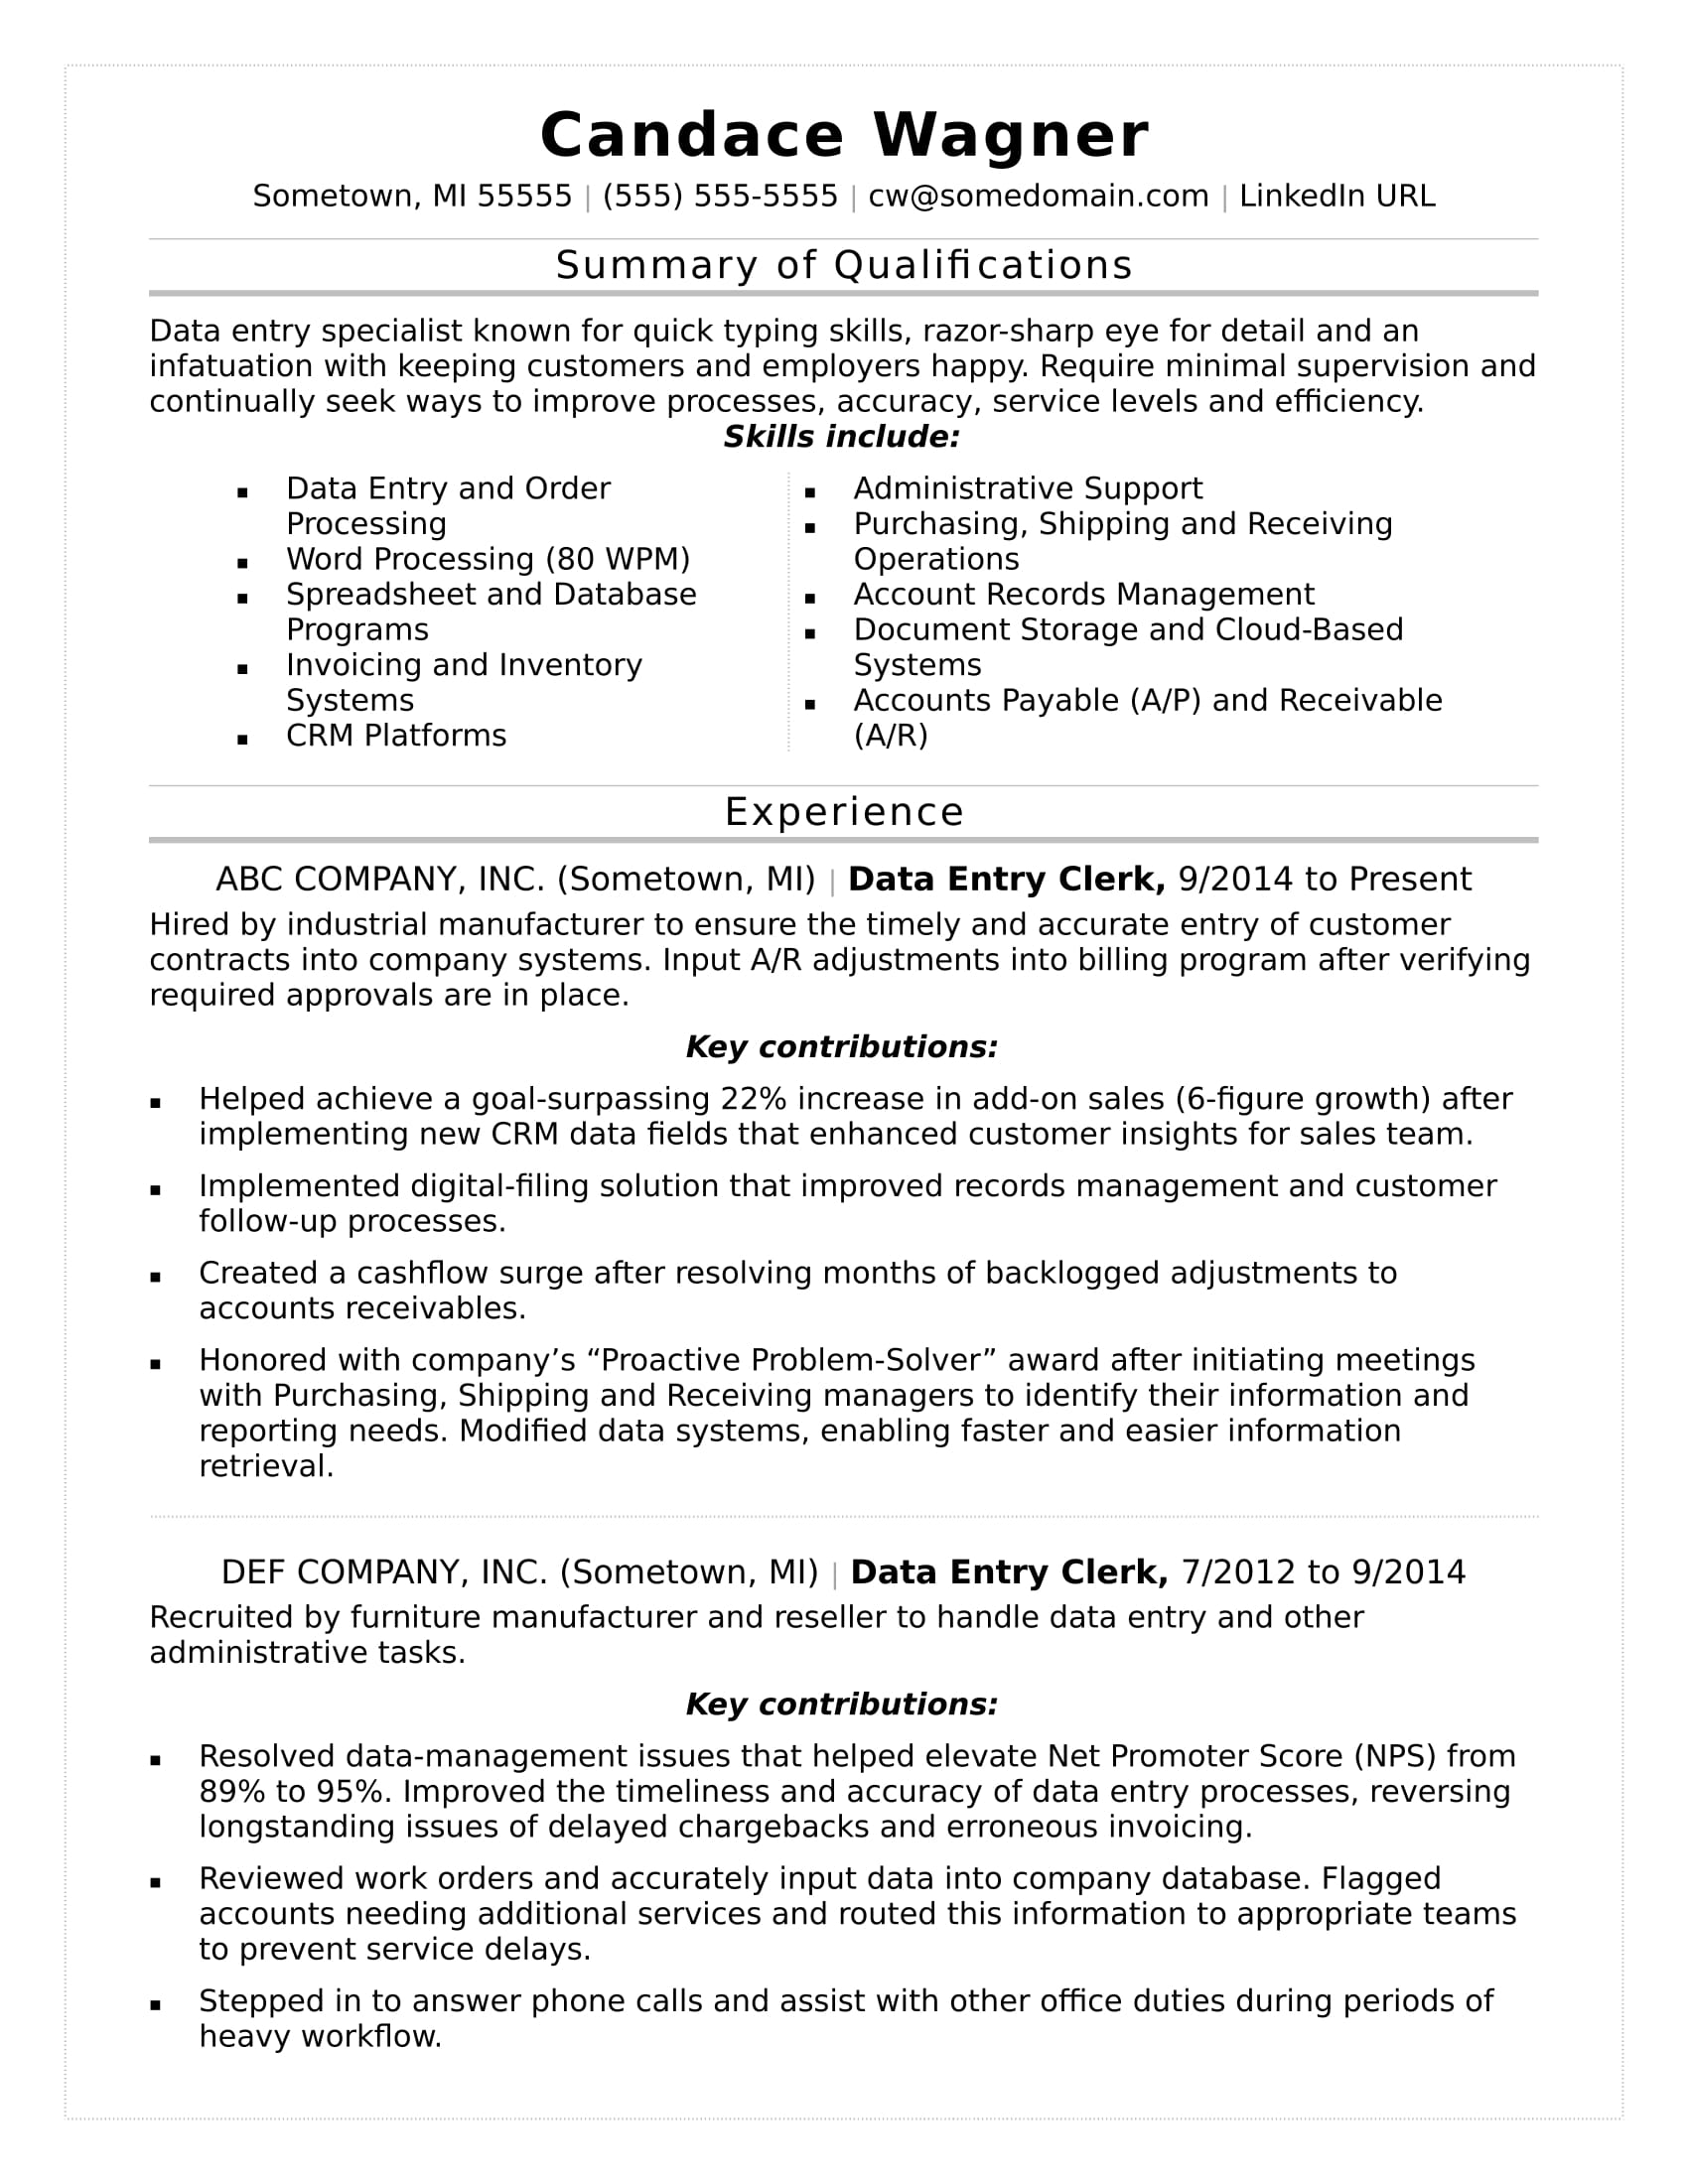 Data Entry Resume Sample | Monster.com